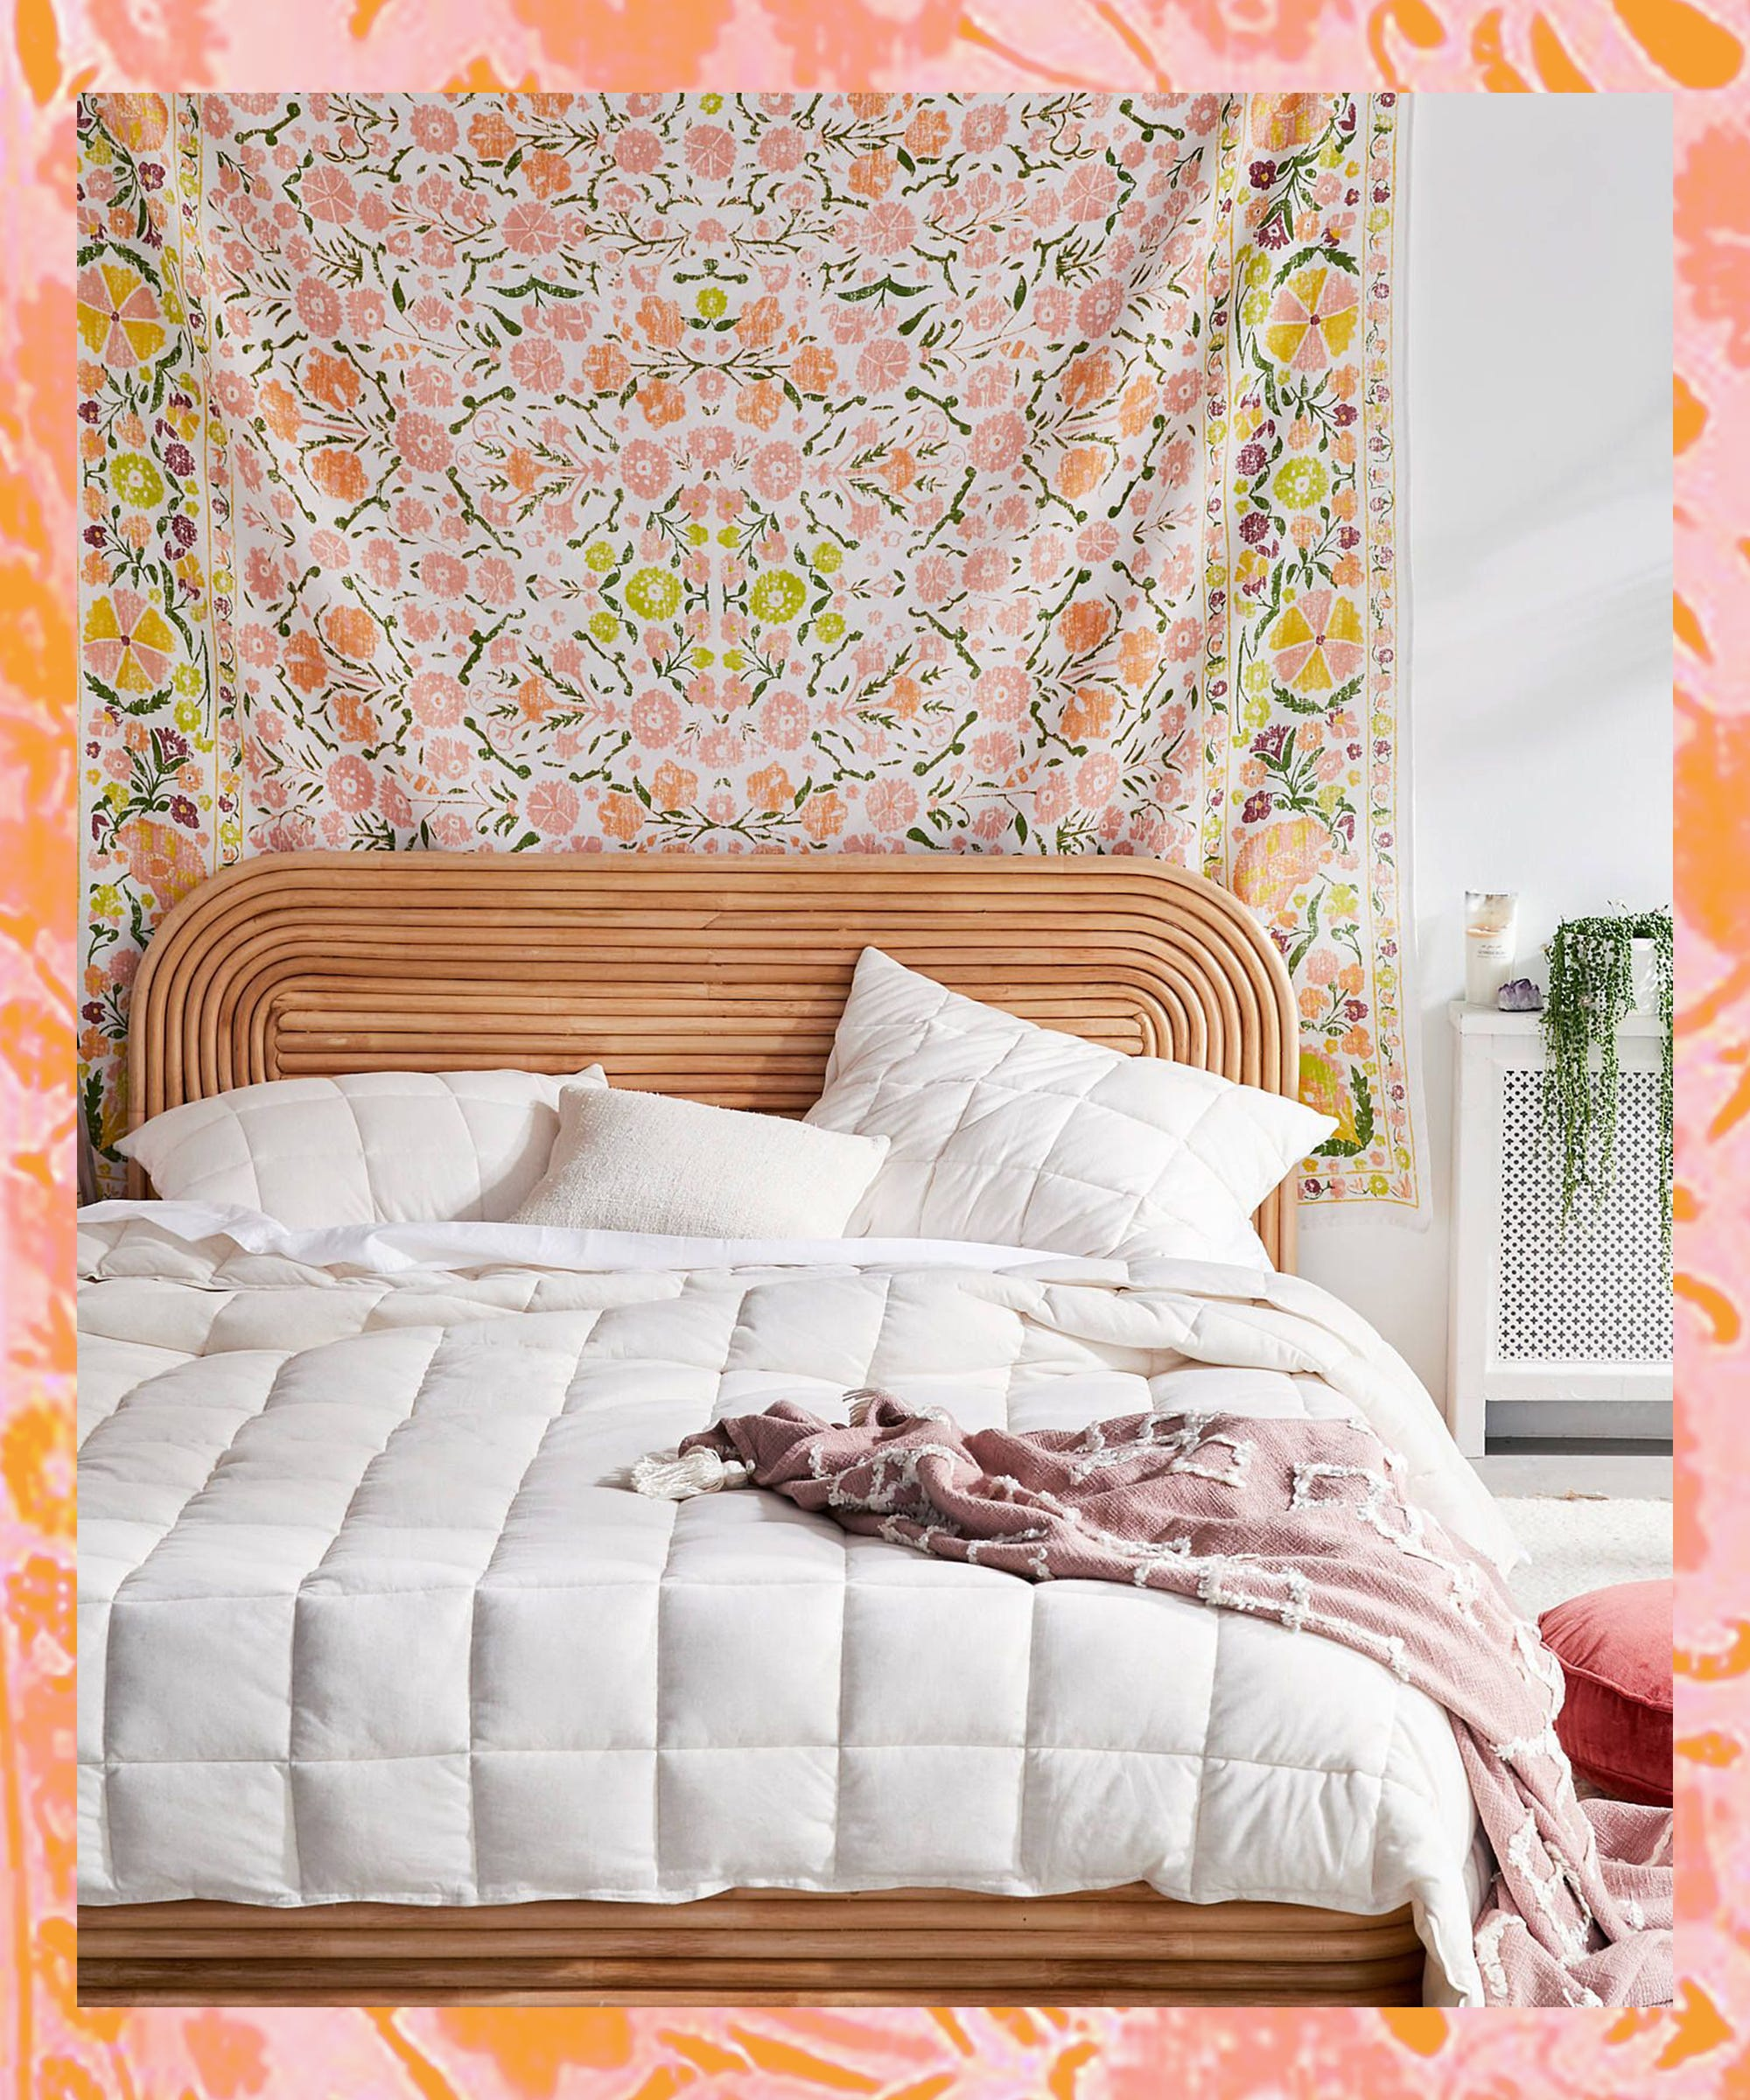 Best Places To Buy Dorm Room Decor Online In Stores